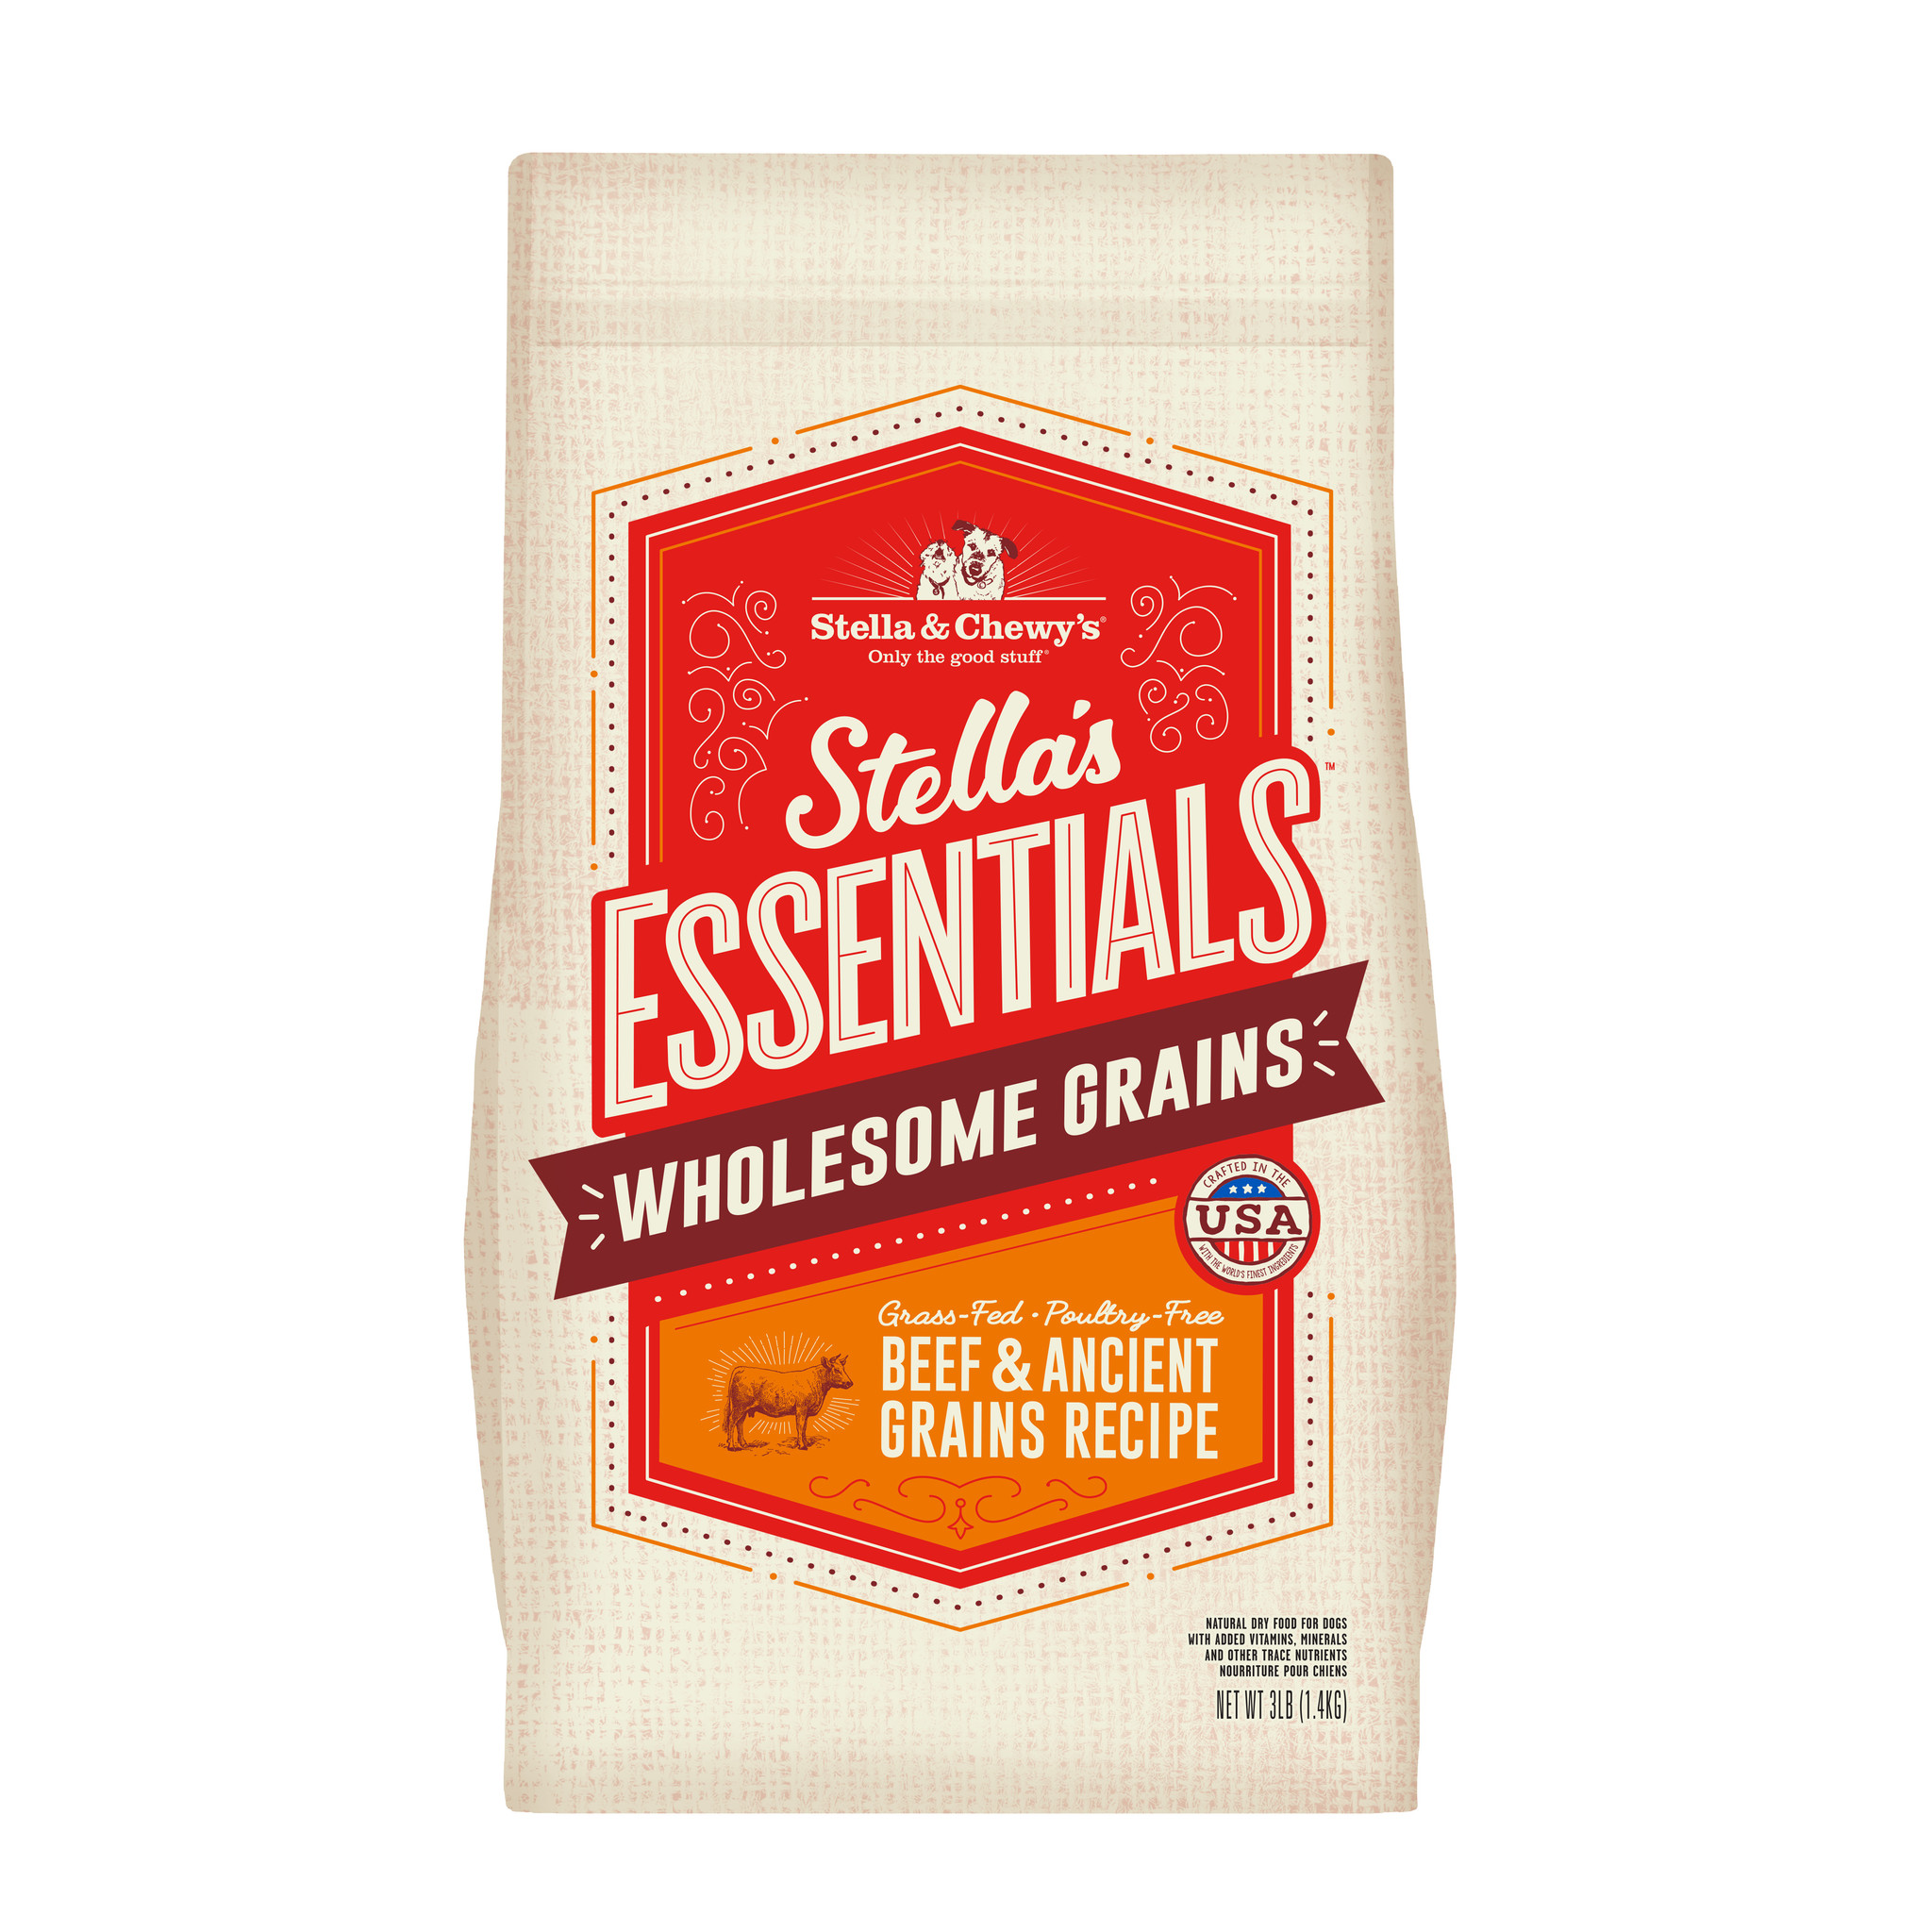 Stella & Chewys Stella & Chewys Stella's Essentials Grass-Fed Beef & Ancient Grains Recipe